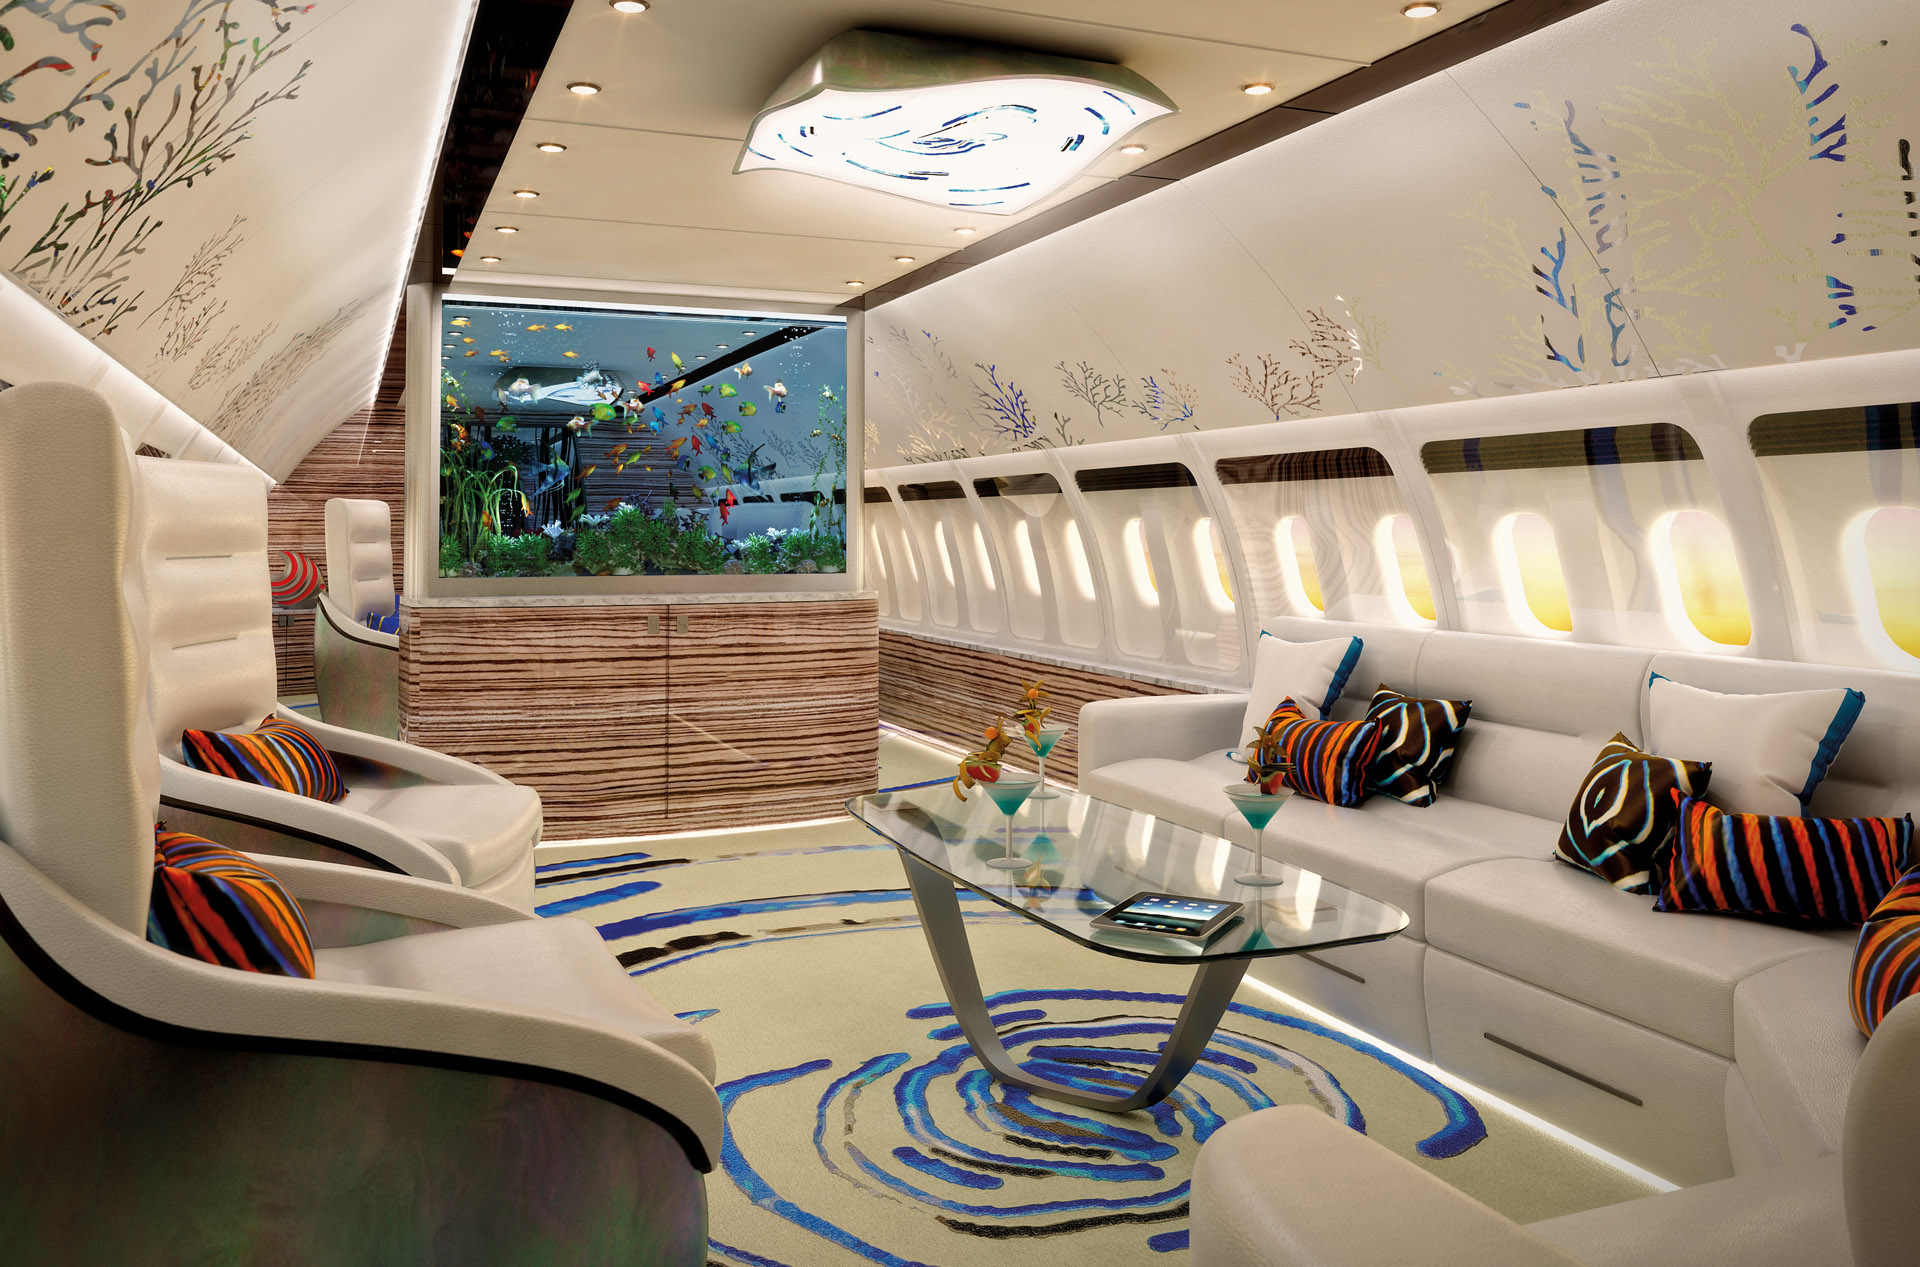 One Of The Main Considerations When Designing A Private Jet Interior Is The  Space Arrangement. Working With Such A Relatively Confined Space, ...